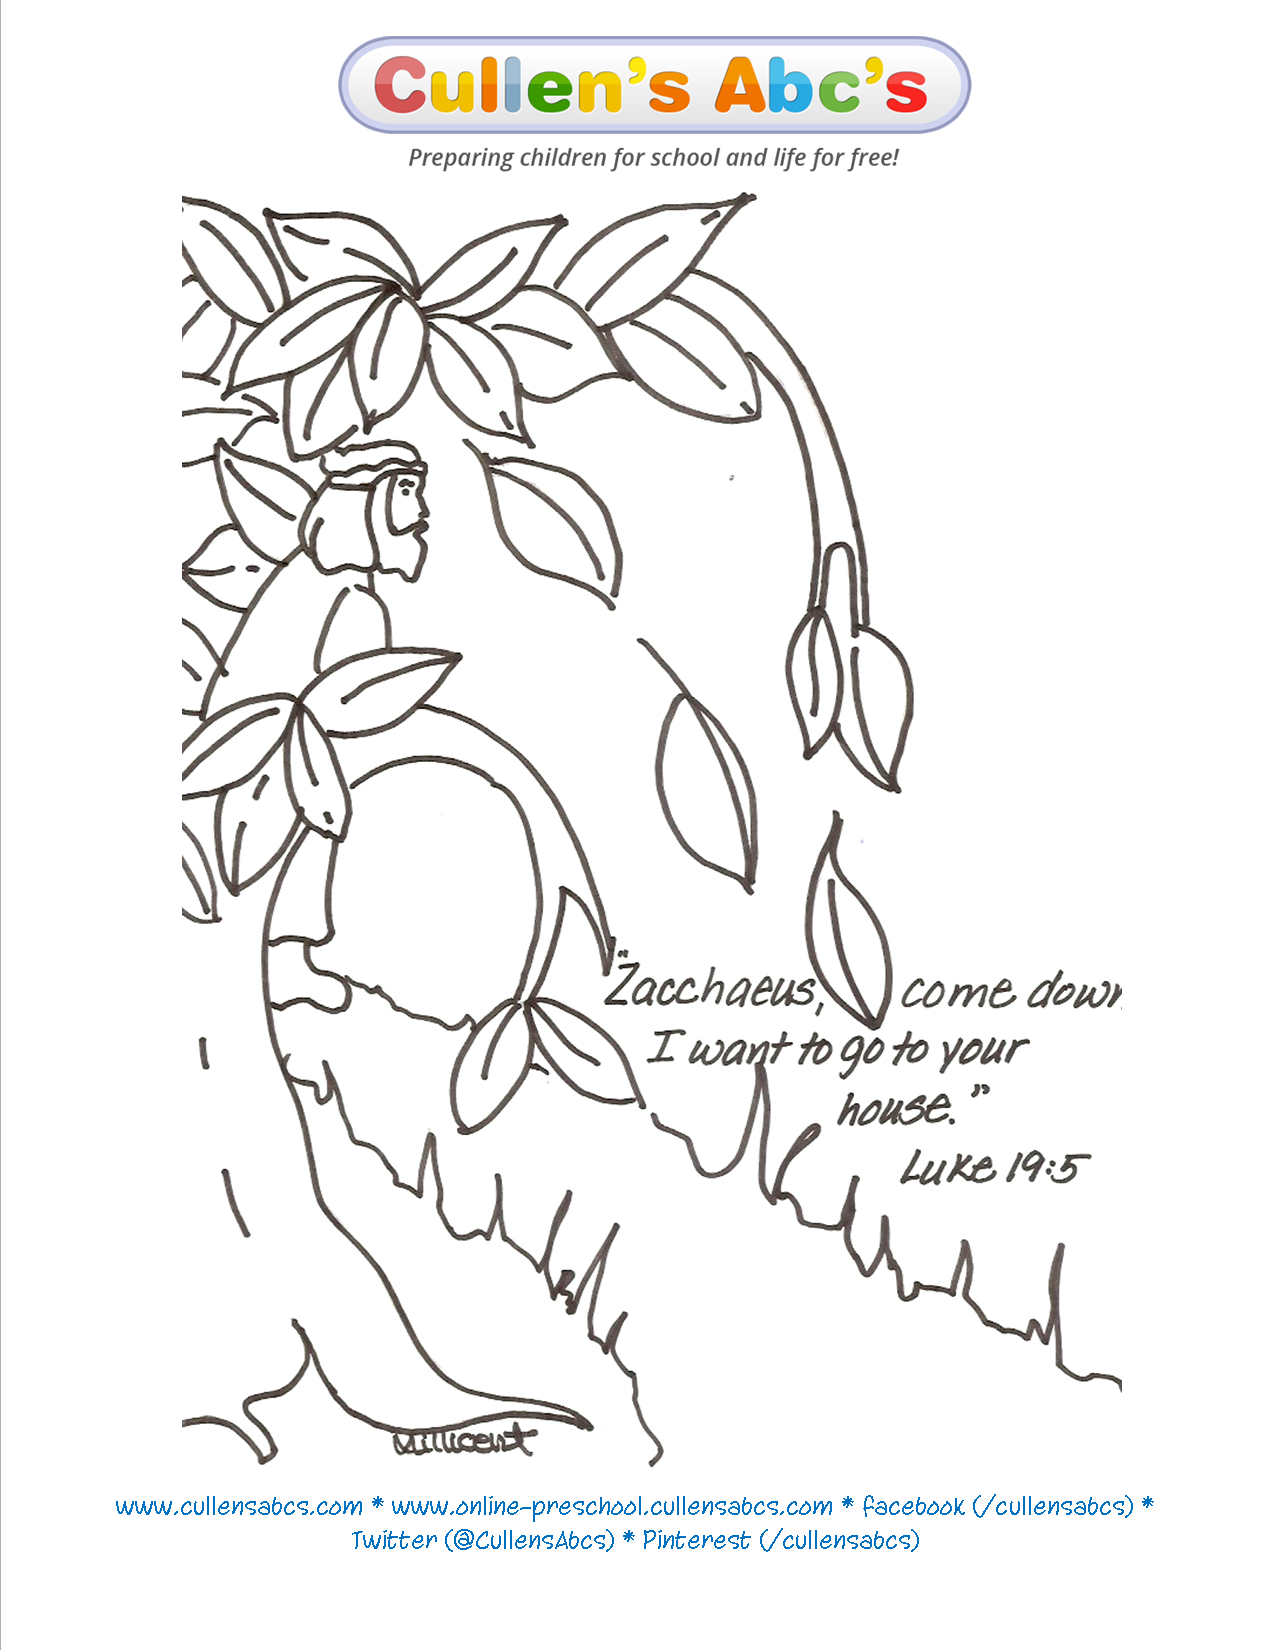 zacchaeus bible memory verse coloring page online preschool and